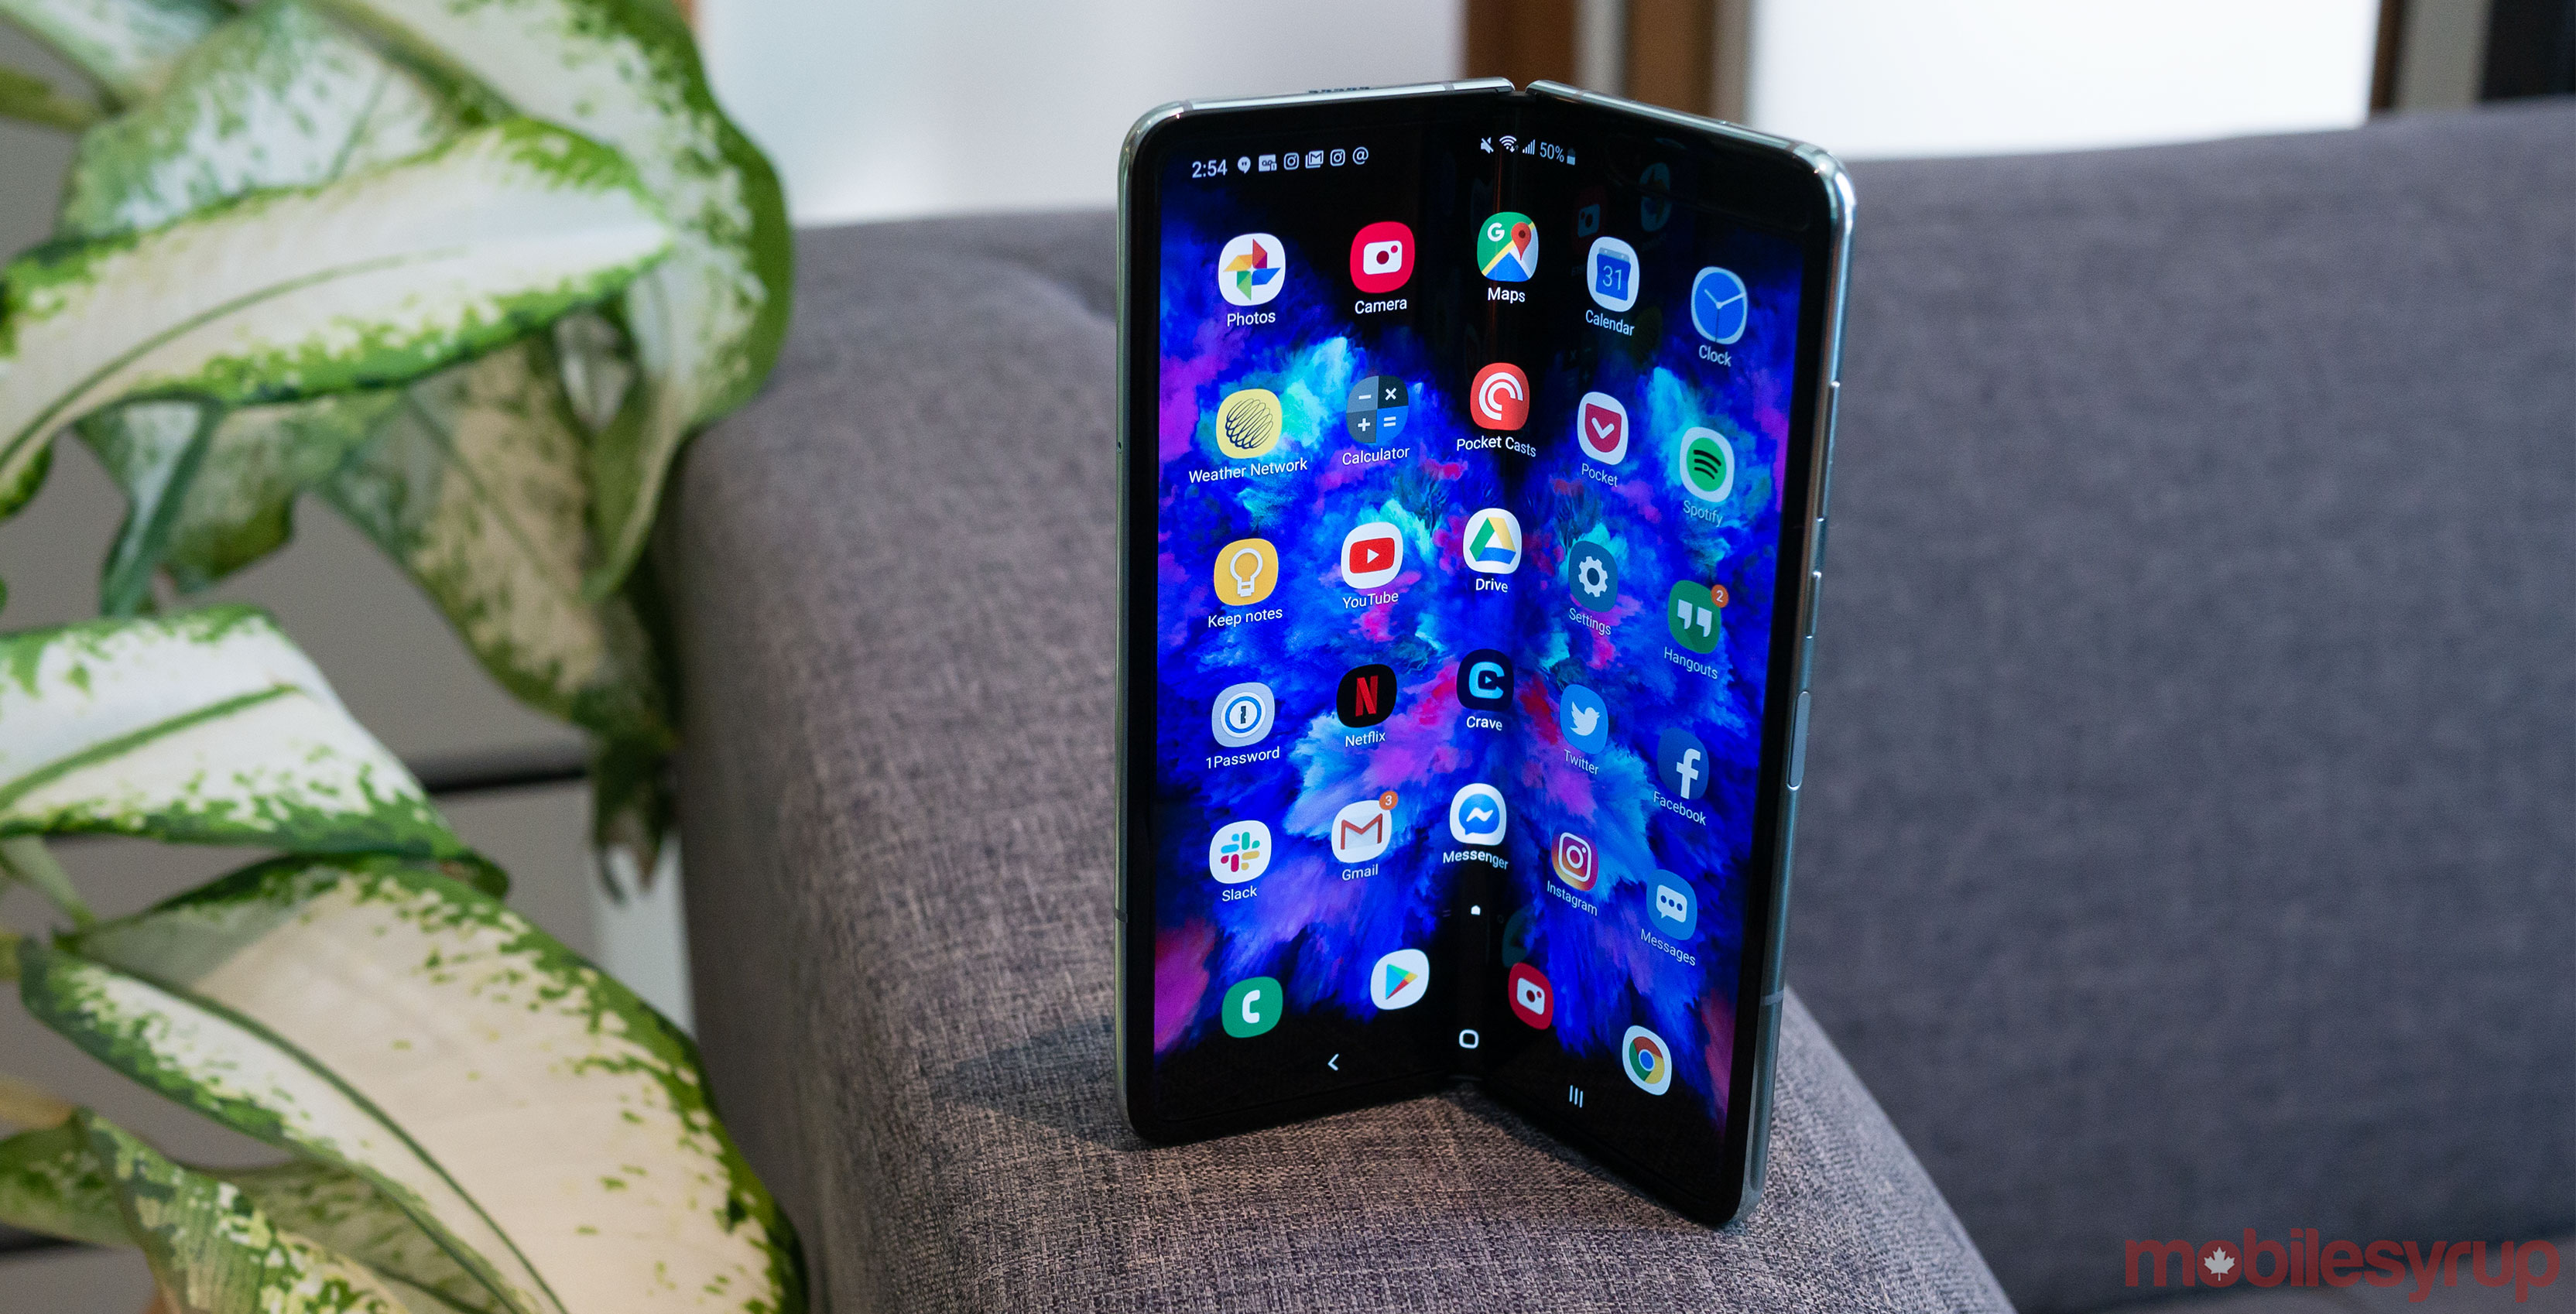 Samsung updates Galaxy Fold tutorial videos to highlight phone's design